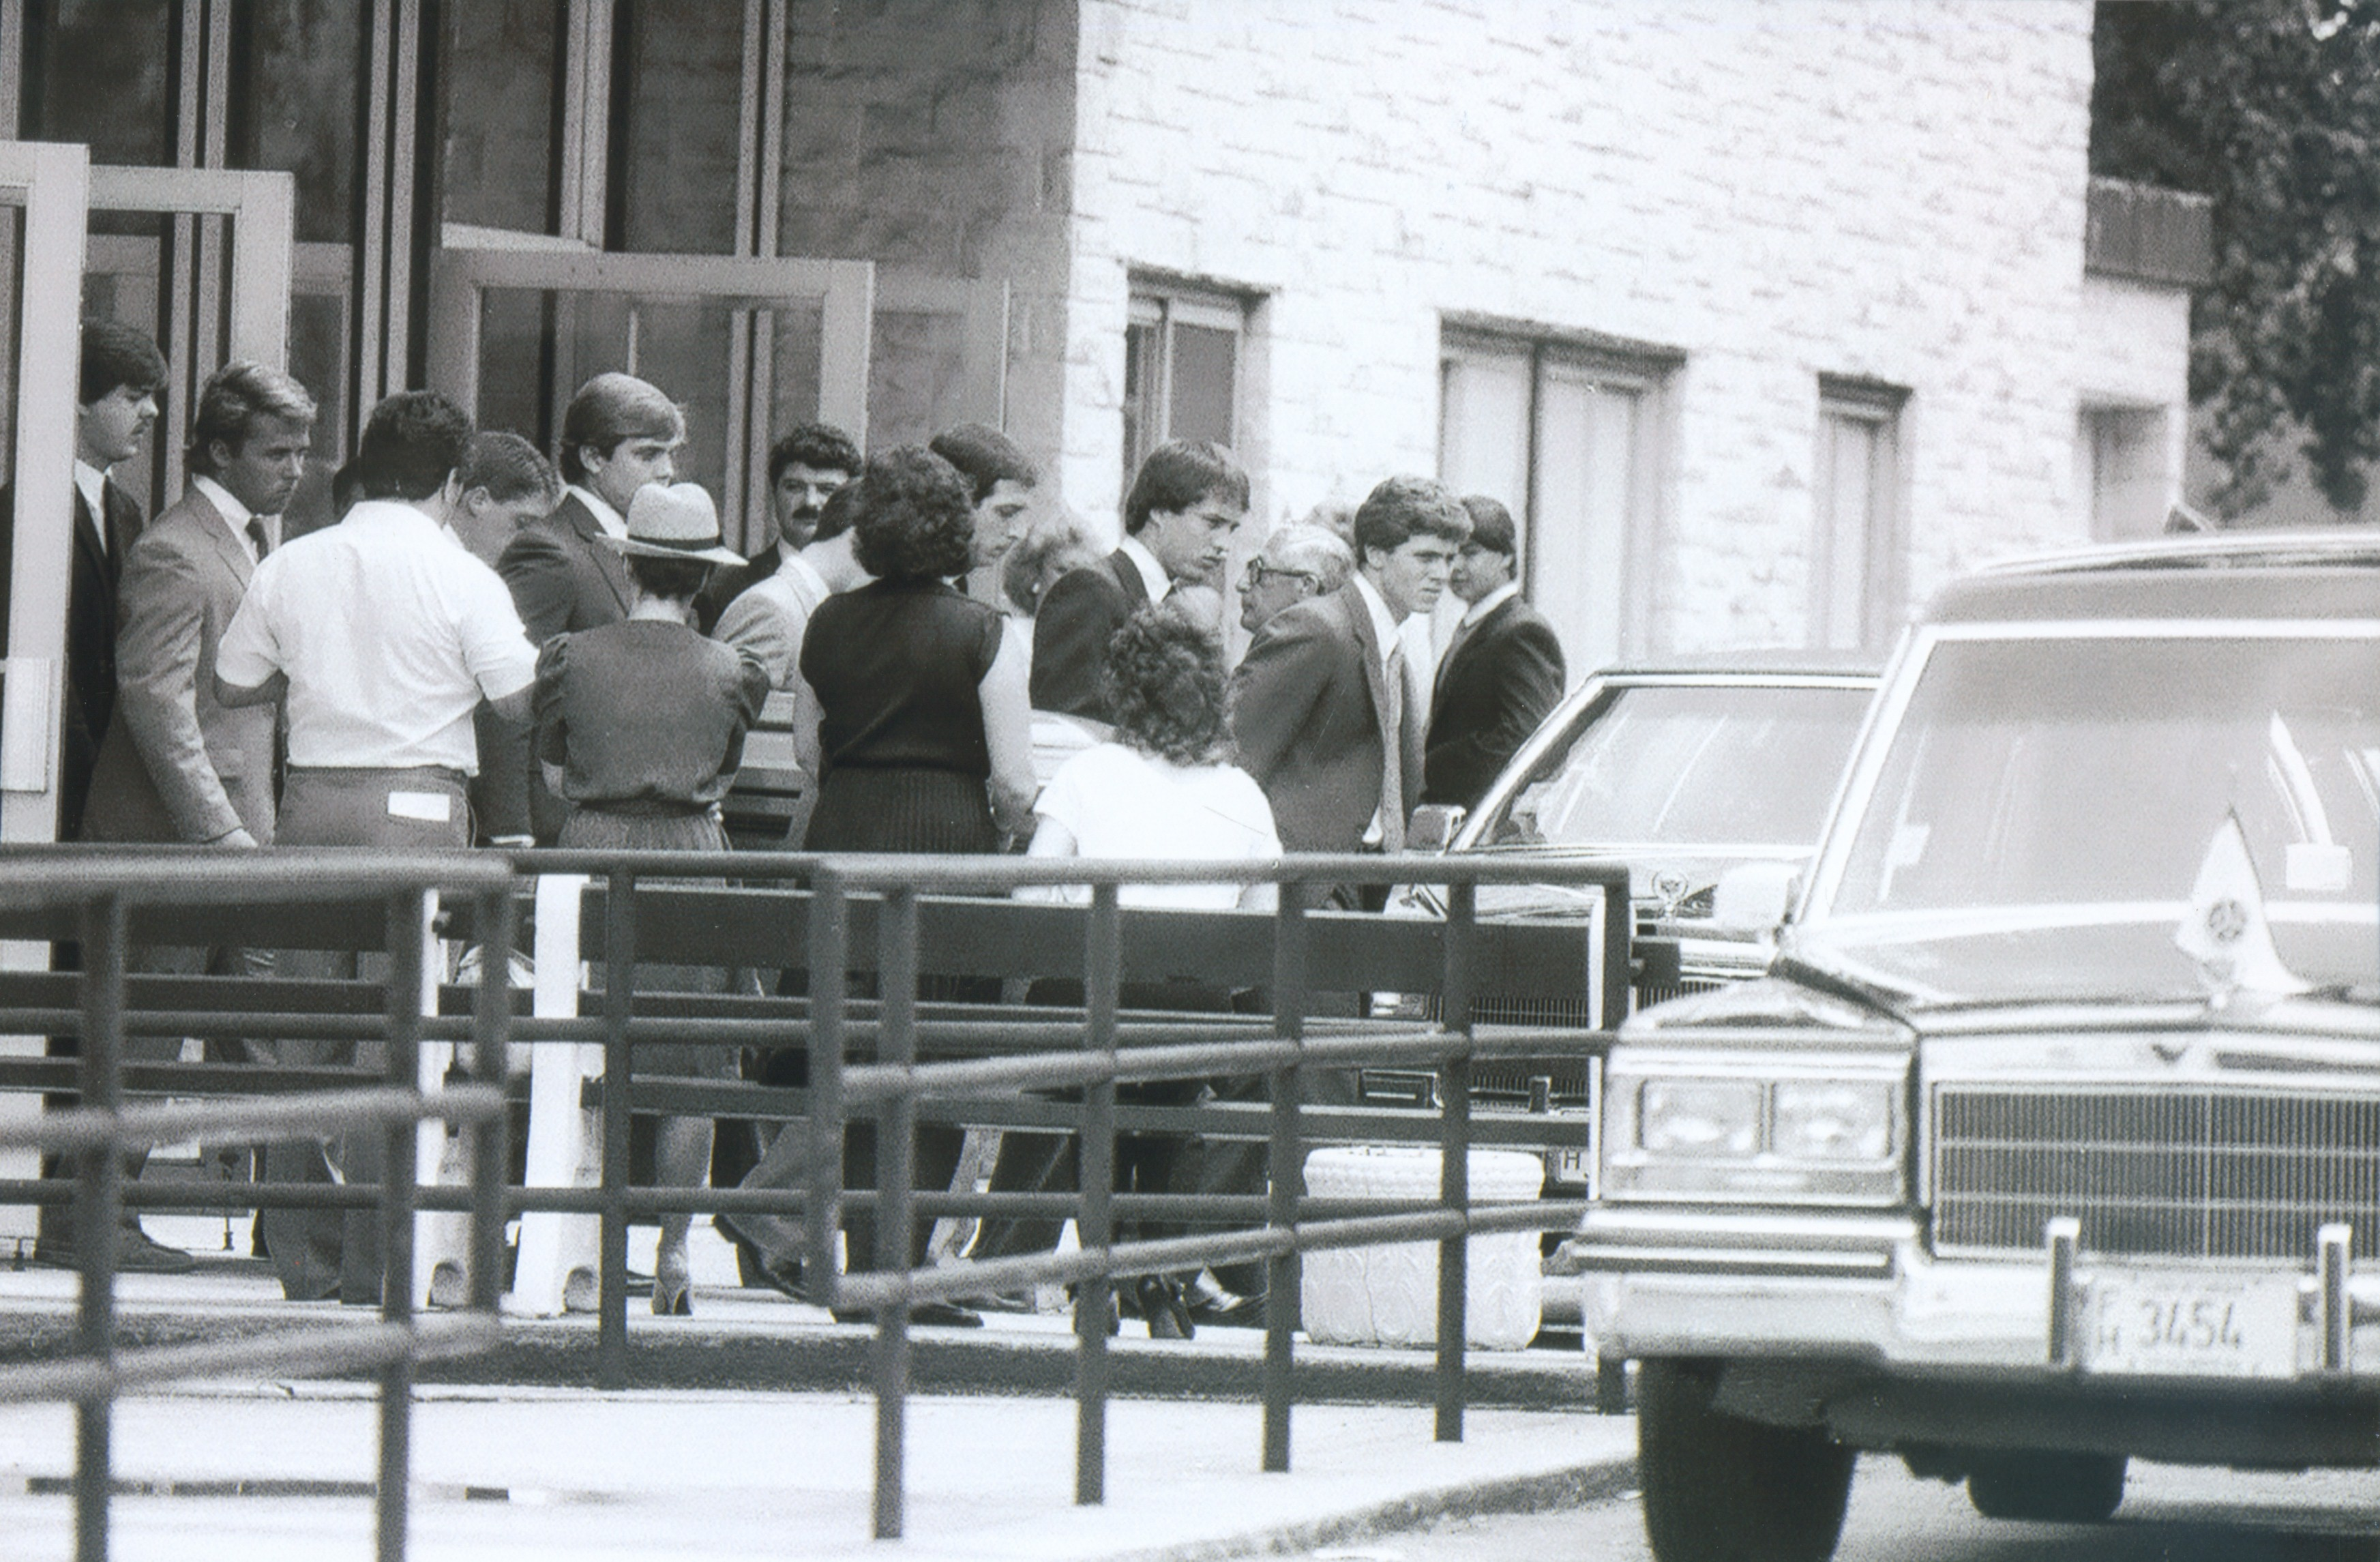 Mchenry County 1981 Tony And Michael Spilotro Being Carried